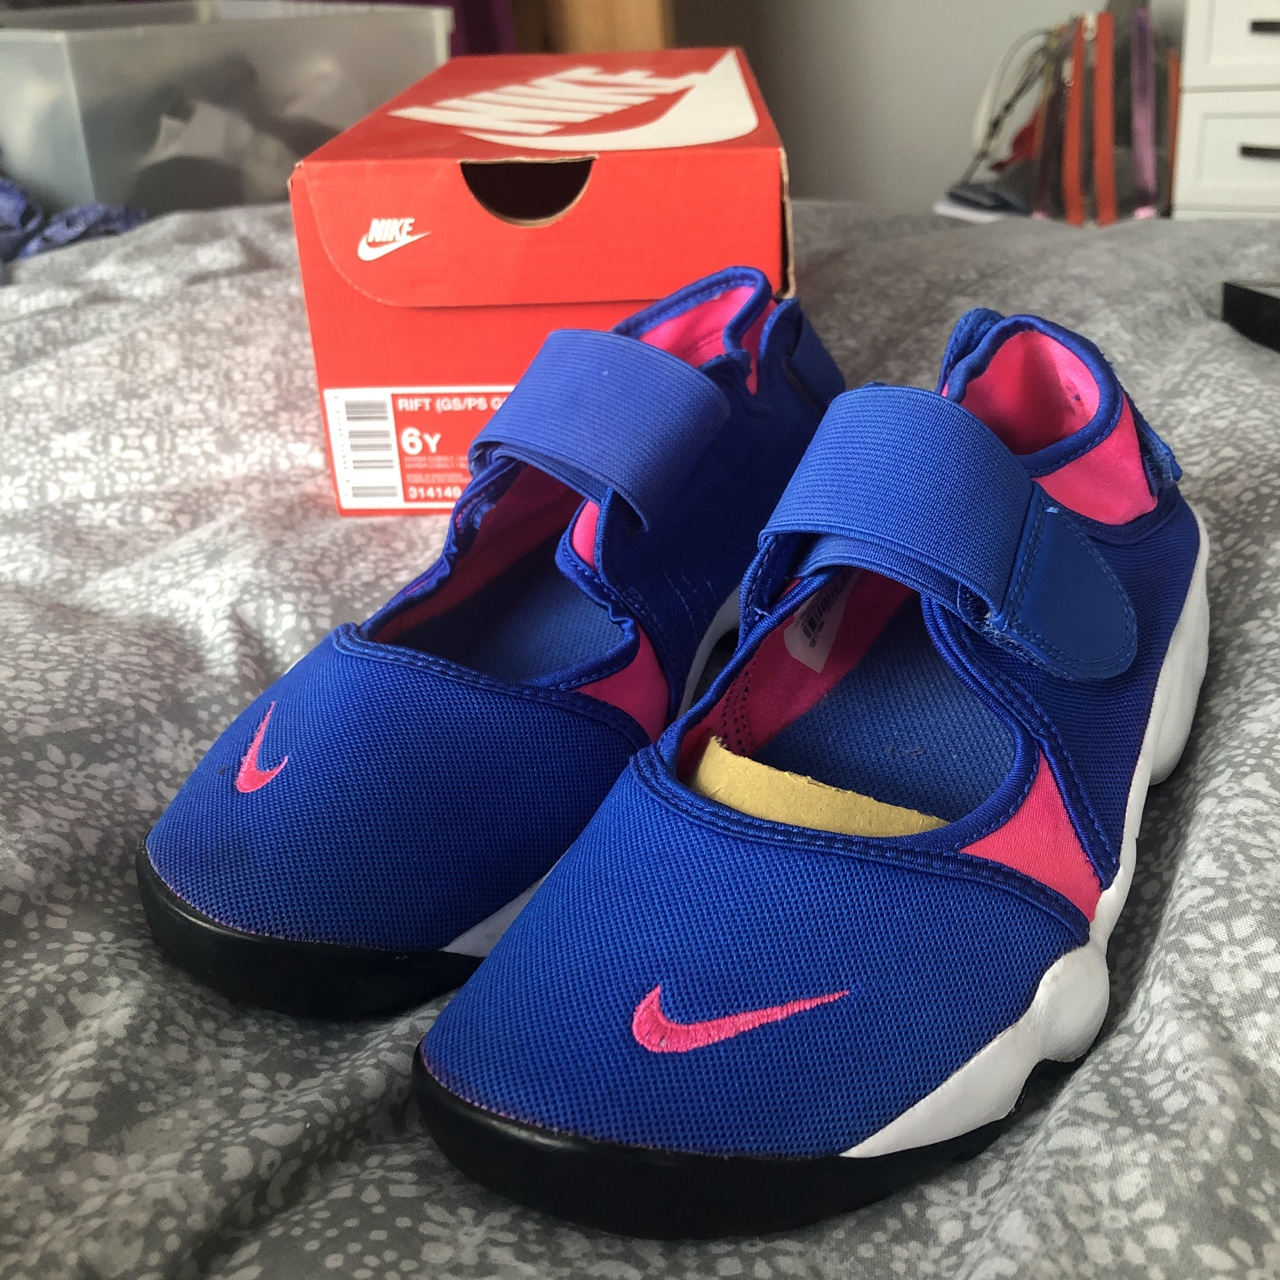 Pink and blue junior Nike Rifts in a